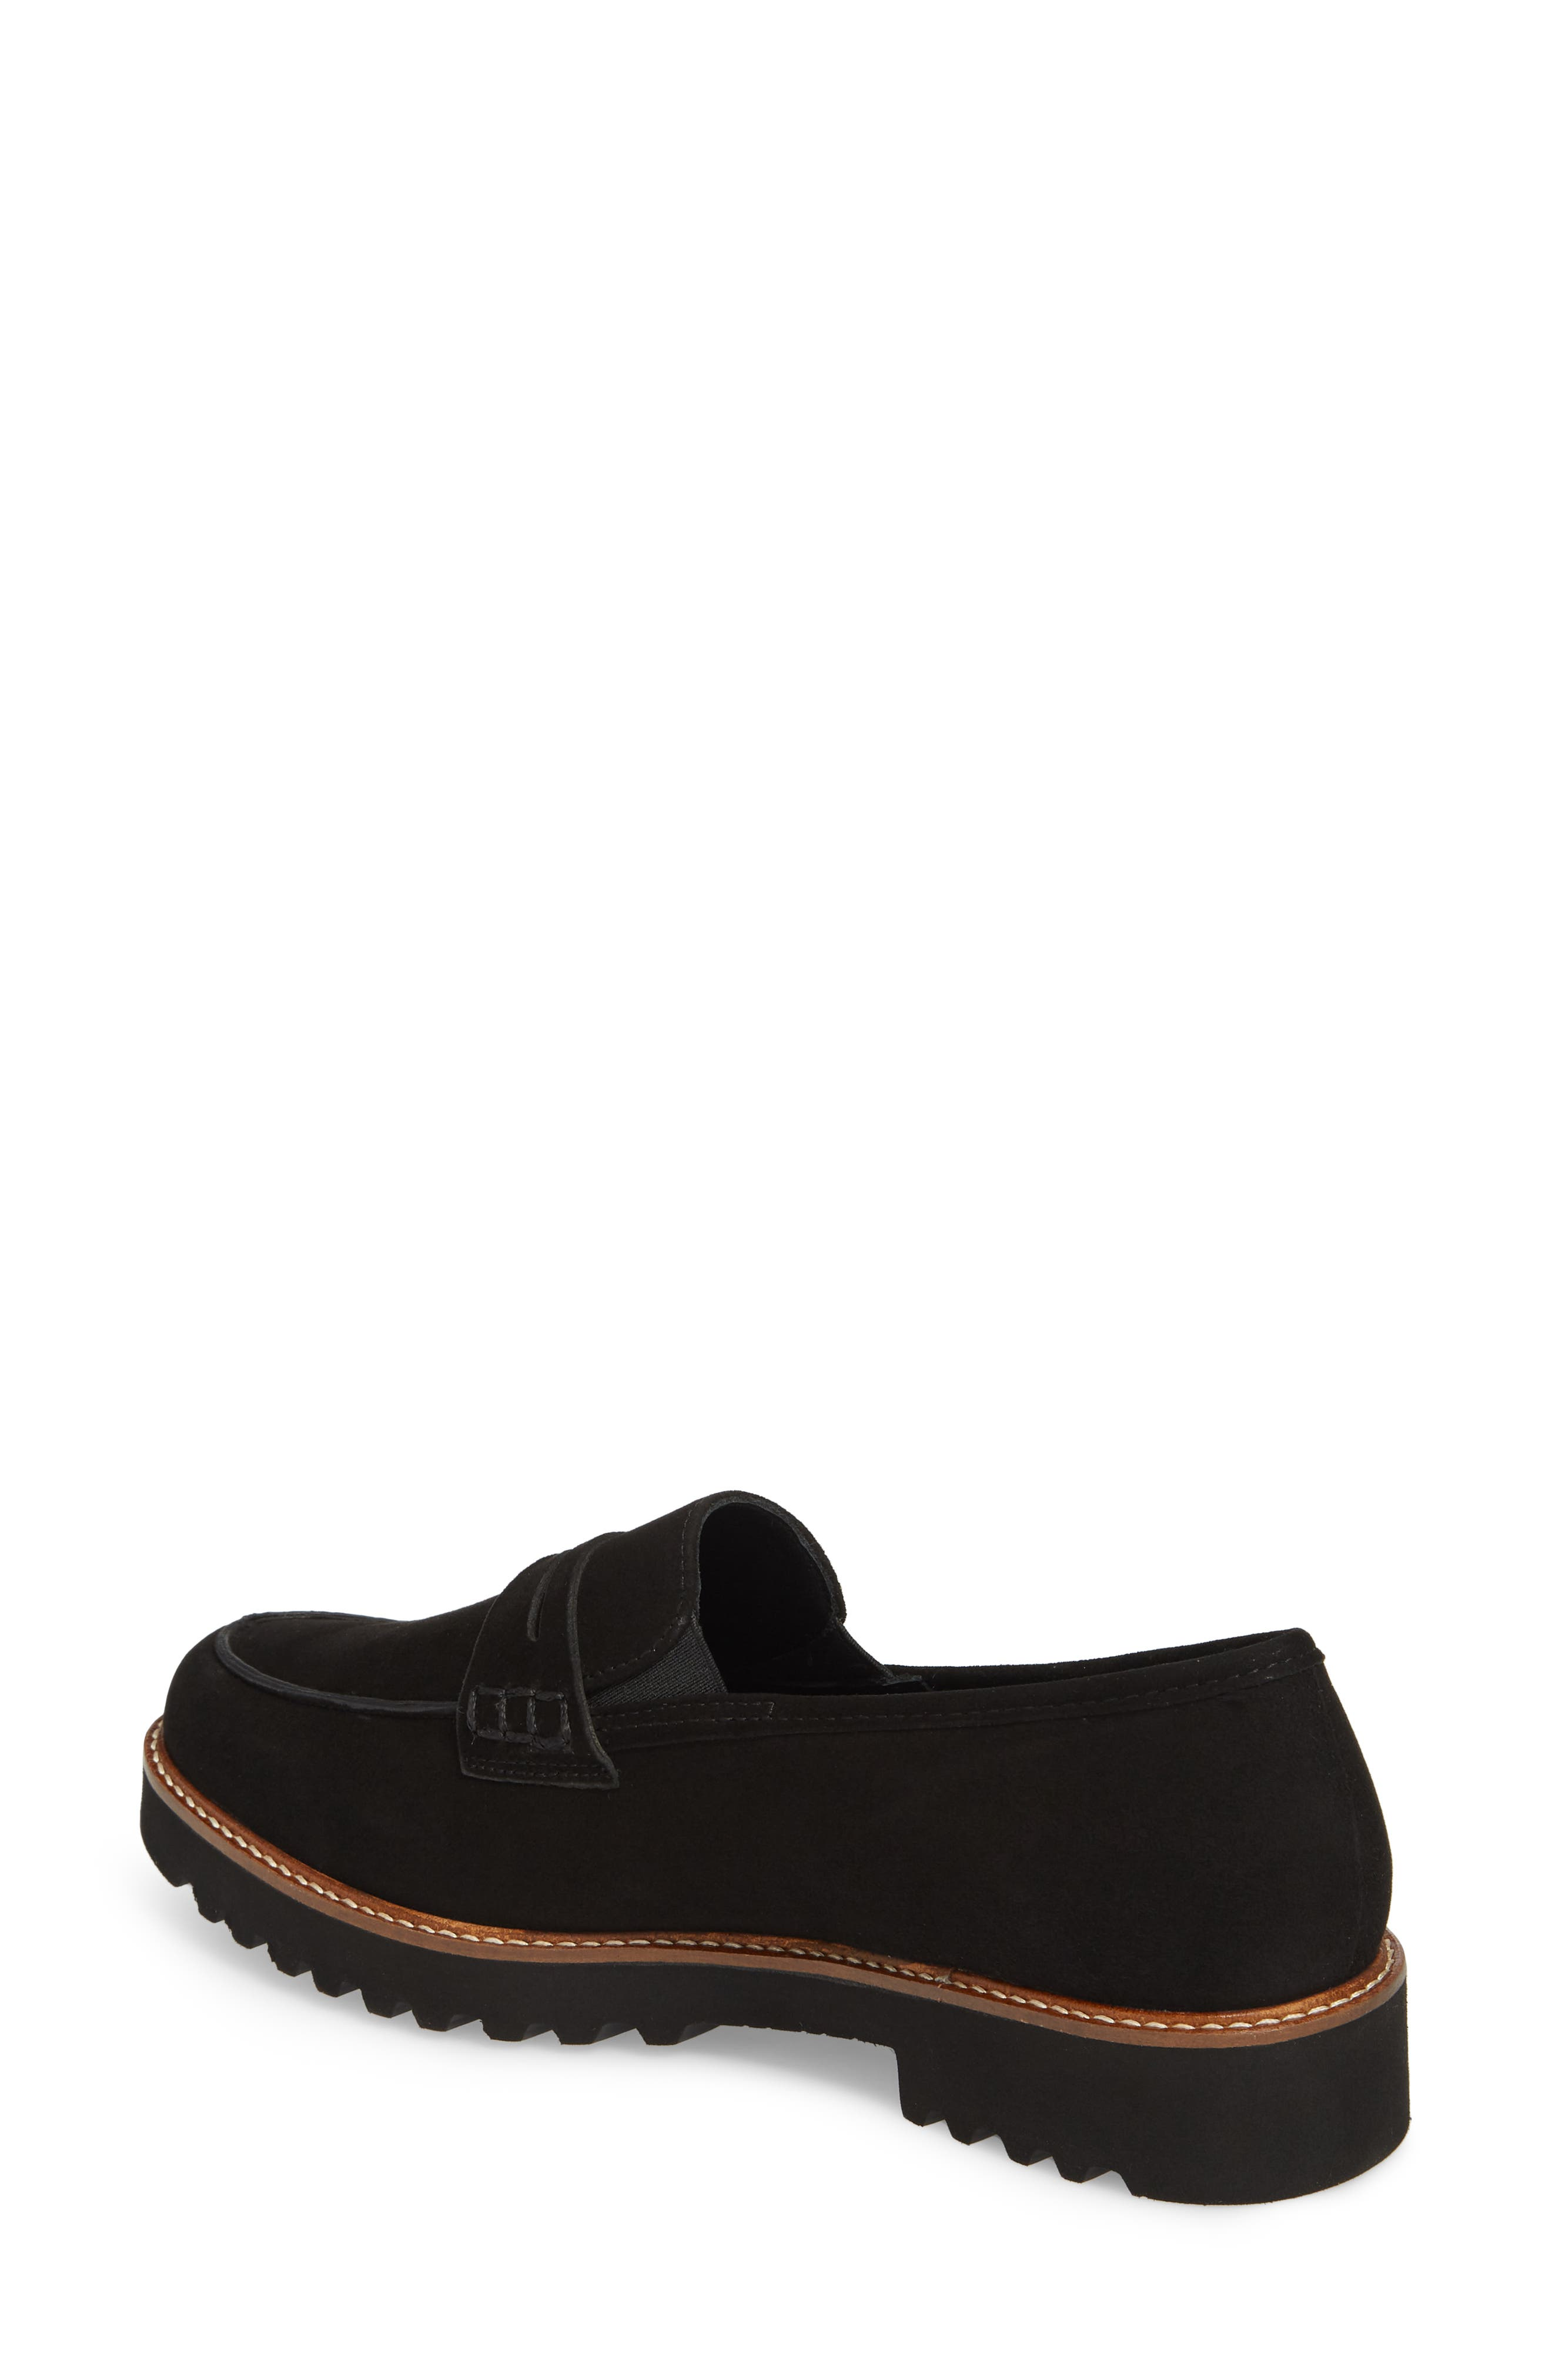 Sidney Penny Loafer,                             Alternate thumbnail 2, color,                             001